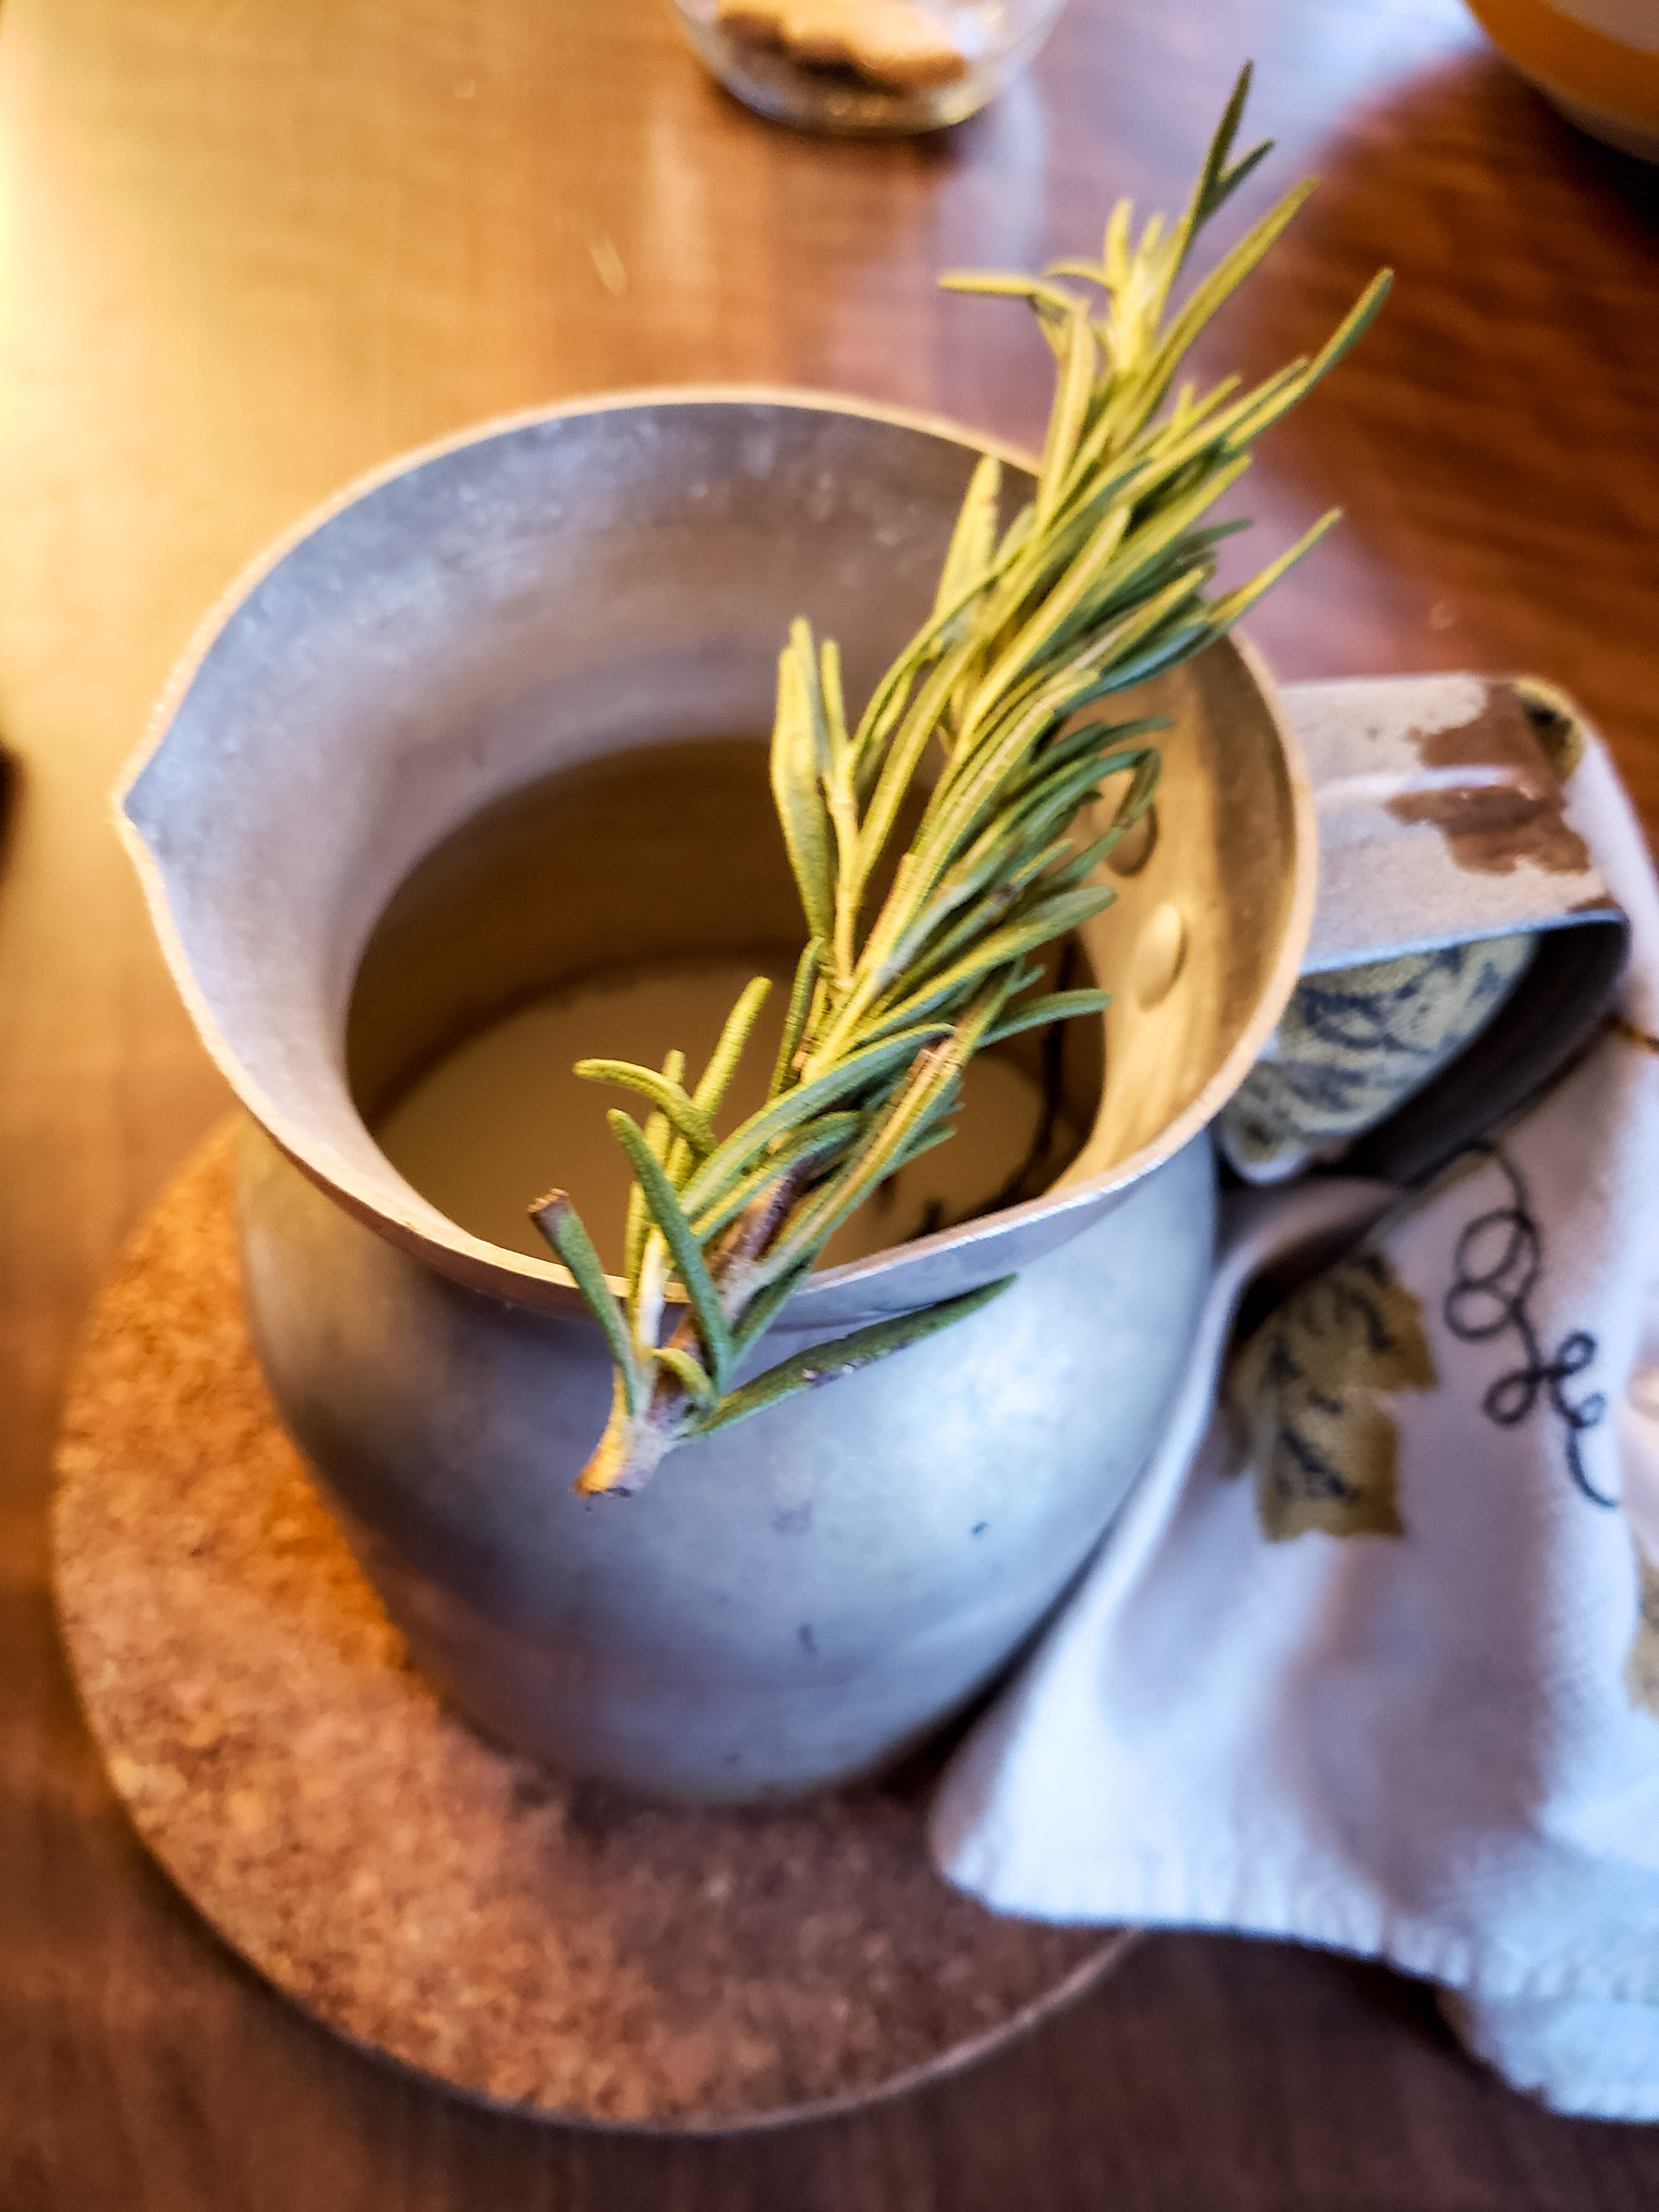 milk infused with rosemary